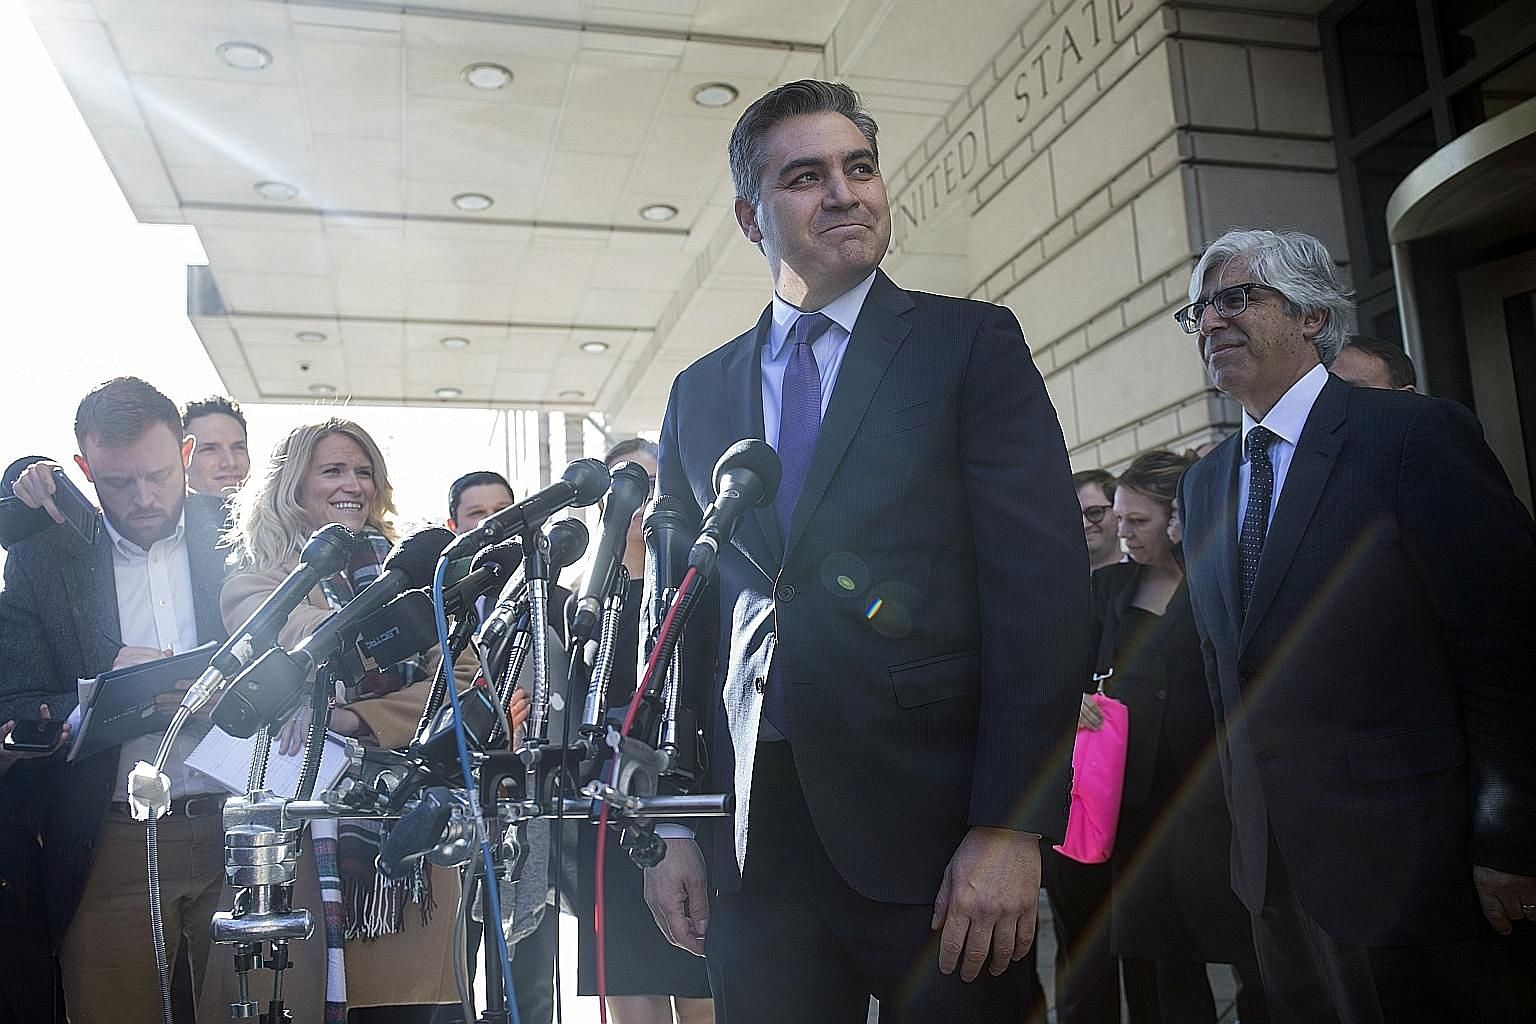 CNN correspondent Jim Acosta speaking to reporters outside the US district courthouse after his press pass was restored.